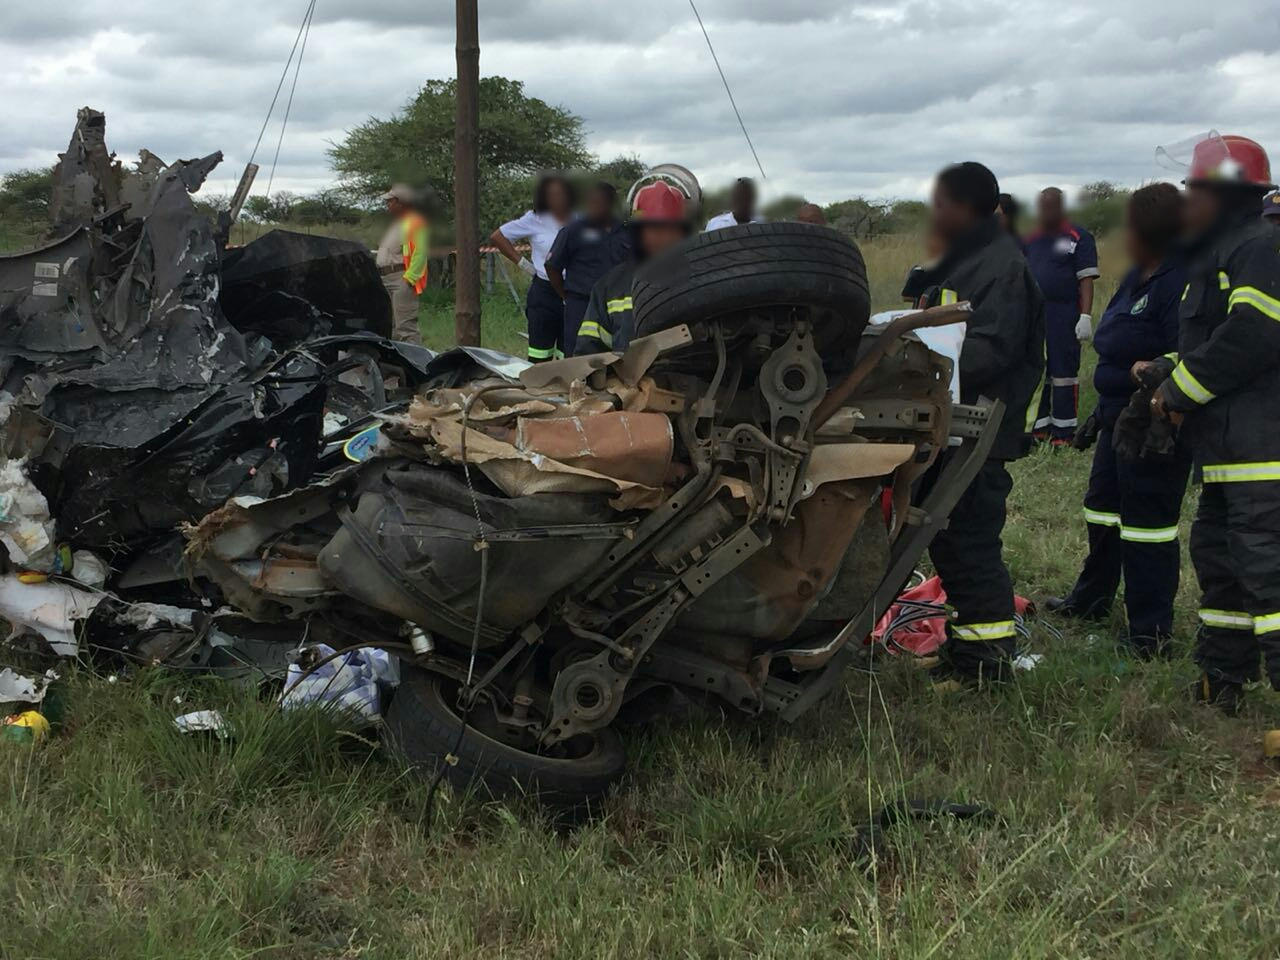 RTMC to investigate Limpopo crashes - SABC News - Breaking news, special reports, world, business, sport coverage of all South African current events. Africa's news leader.